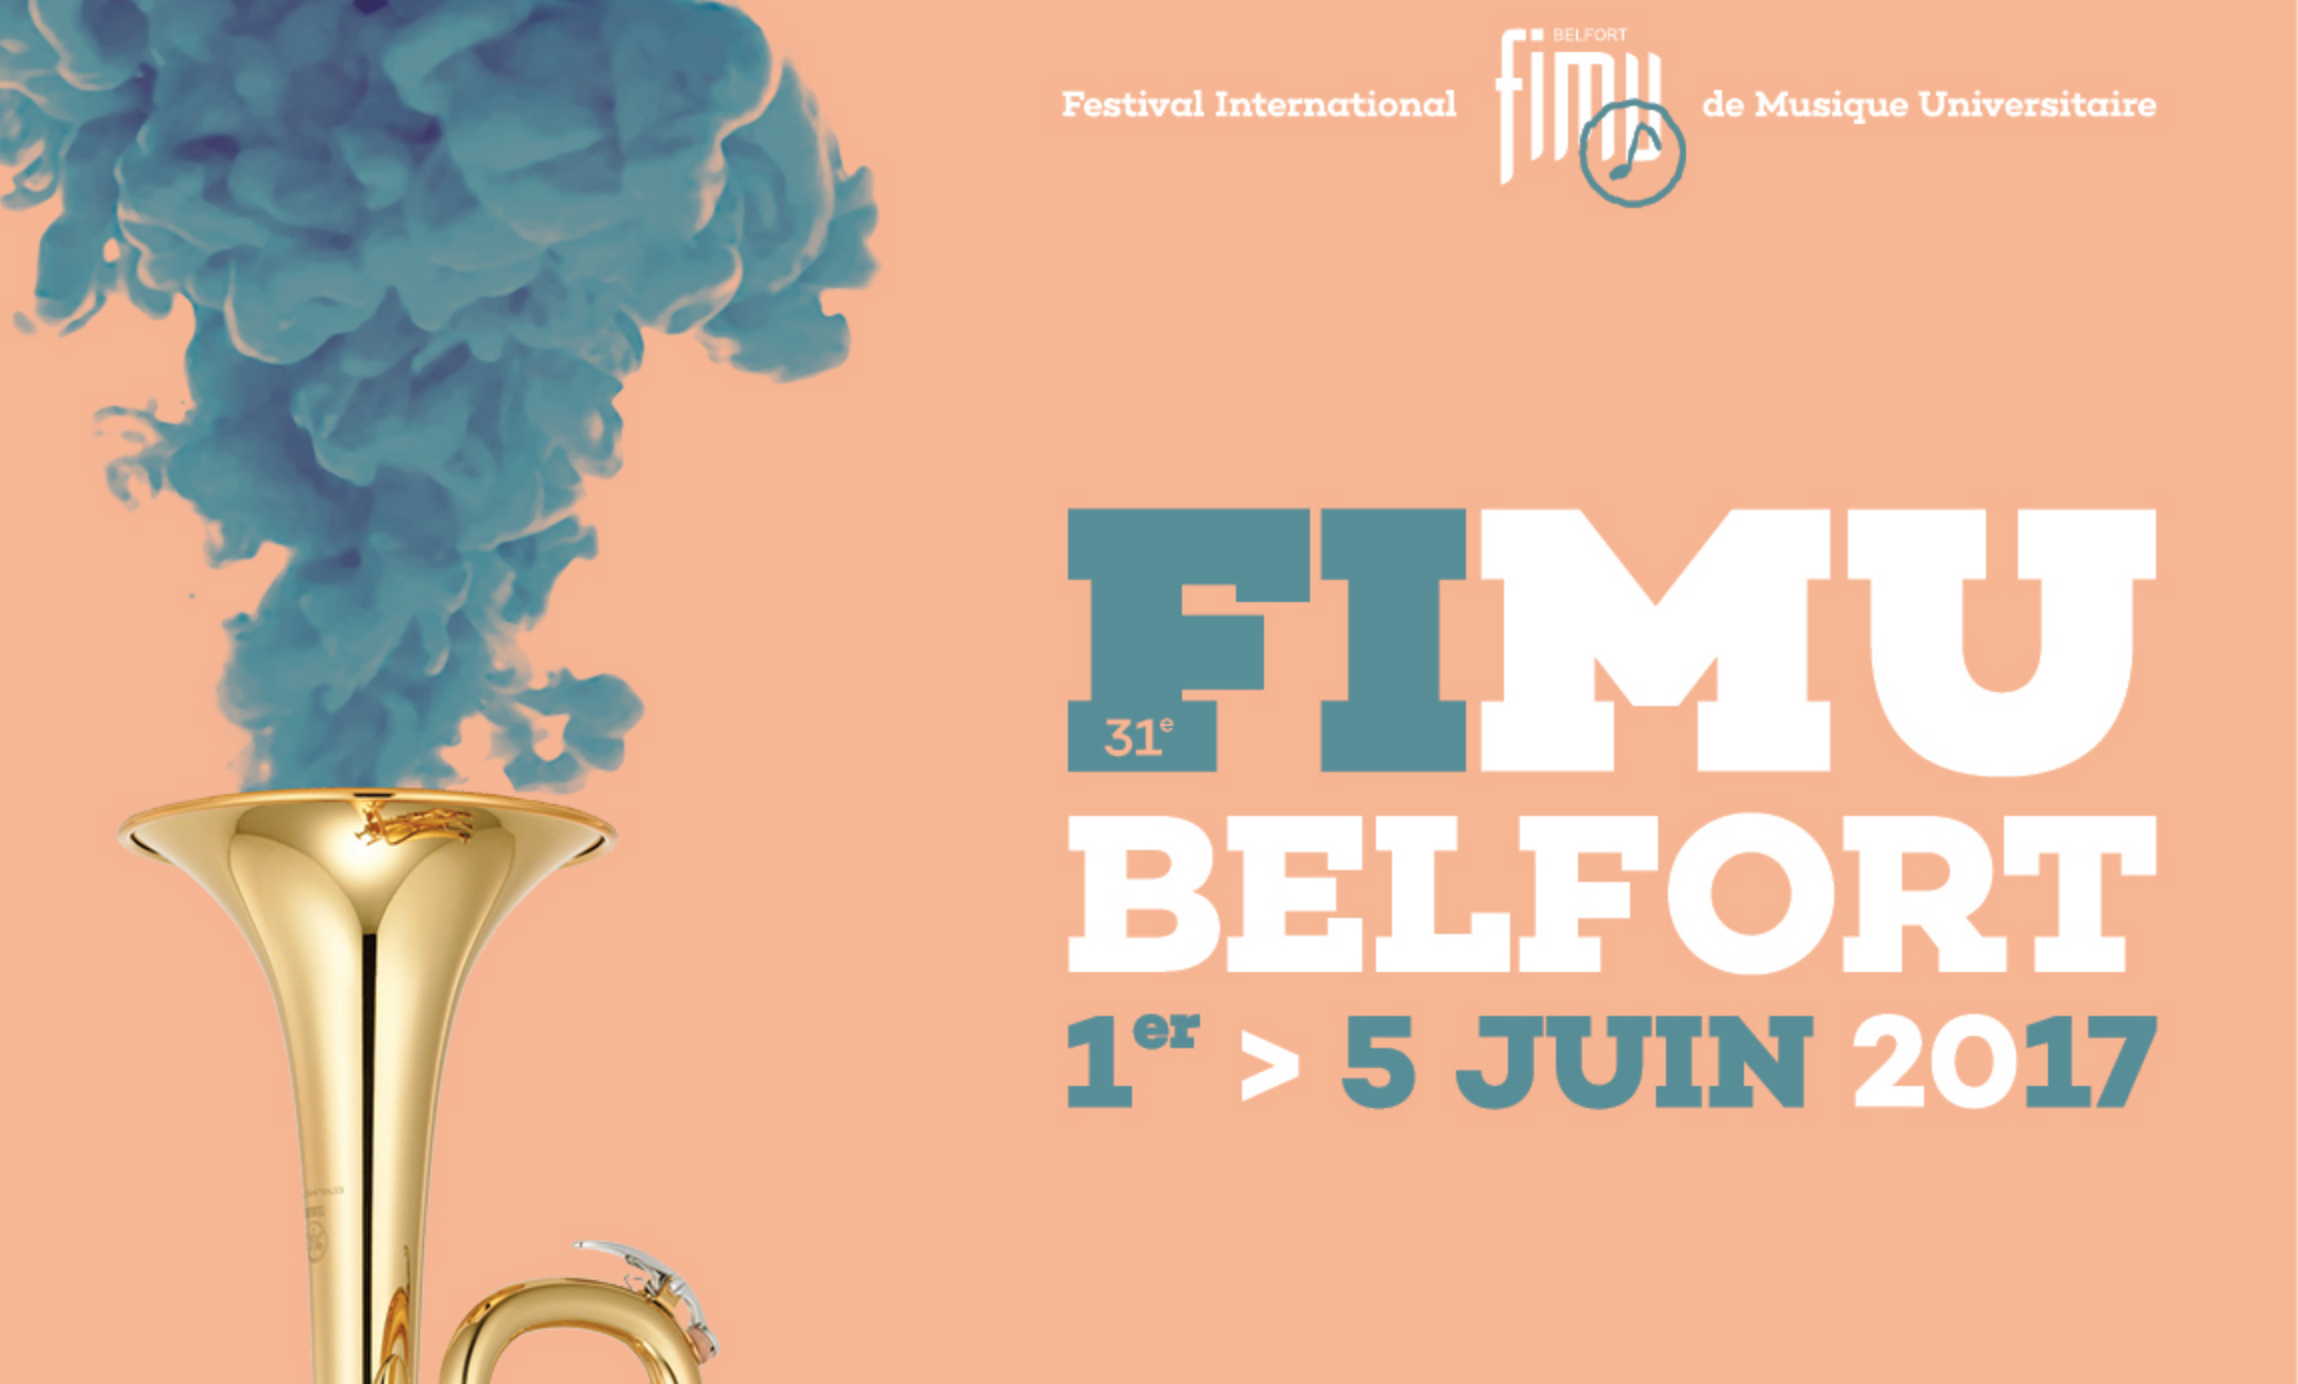 fimu-belfort-festival-international-musique-universitaire